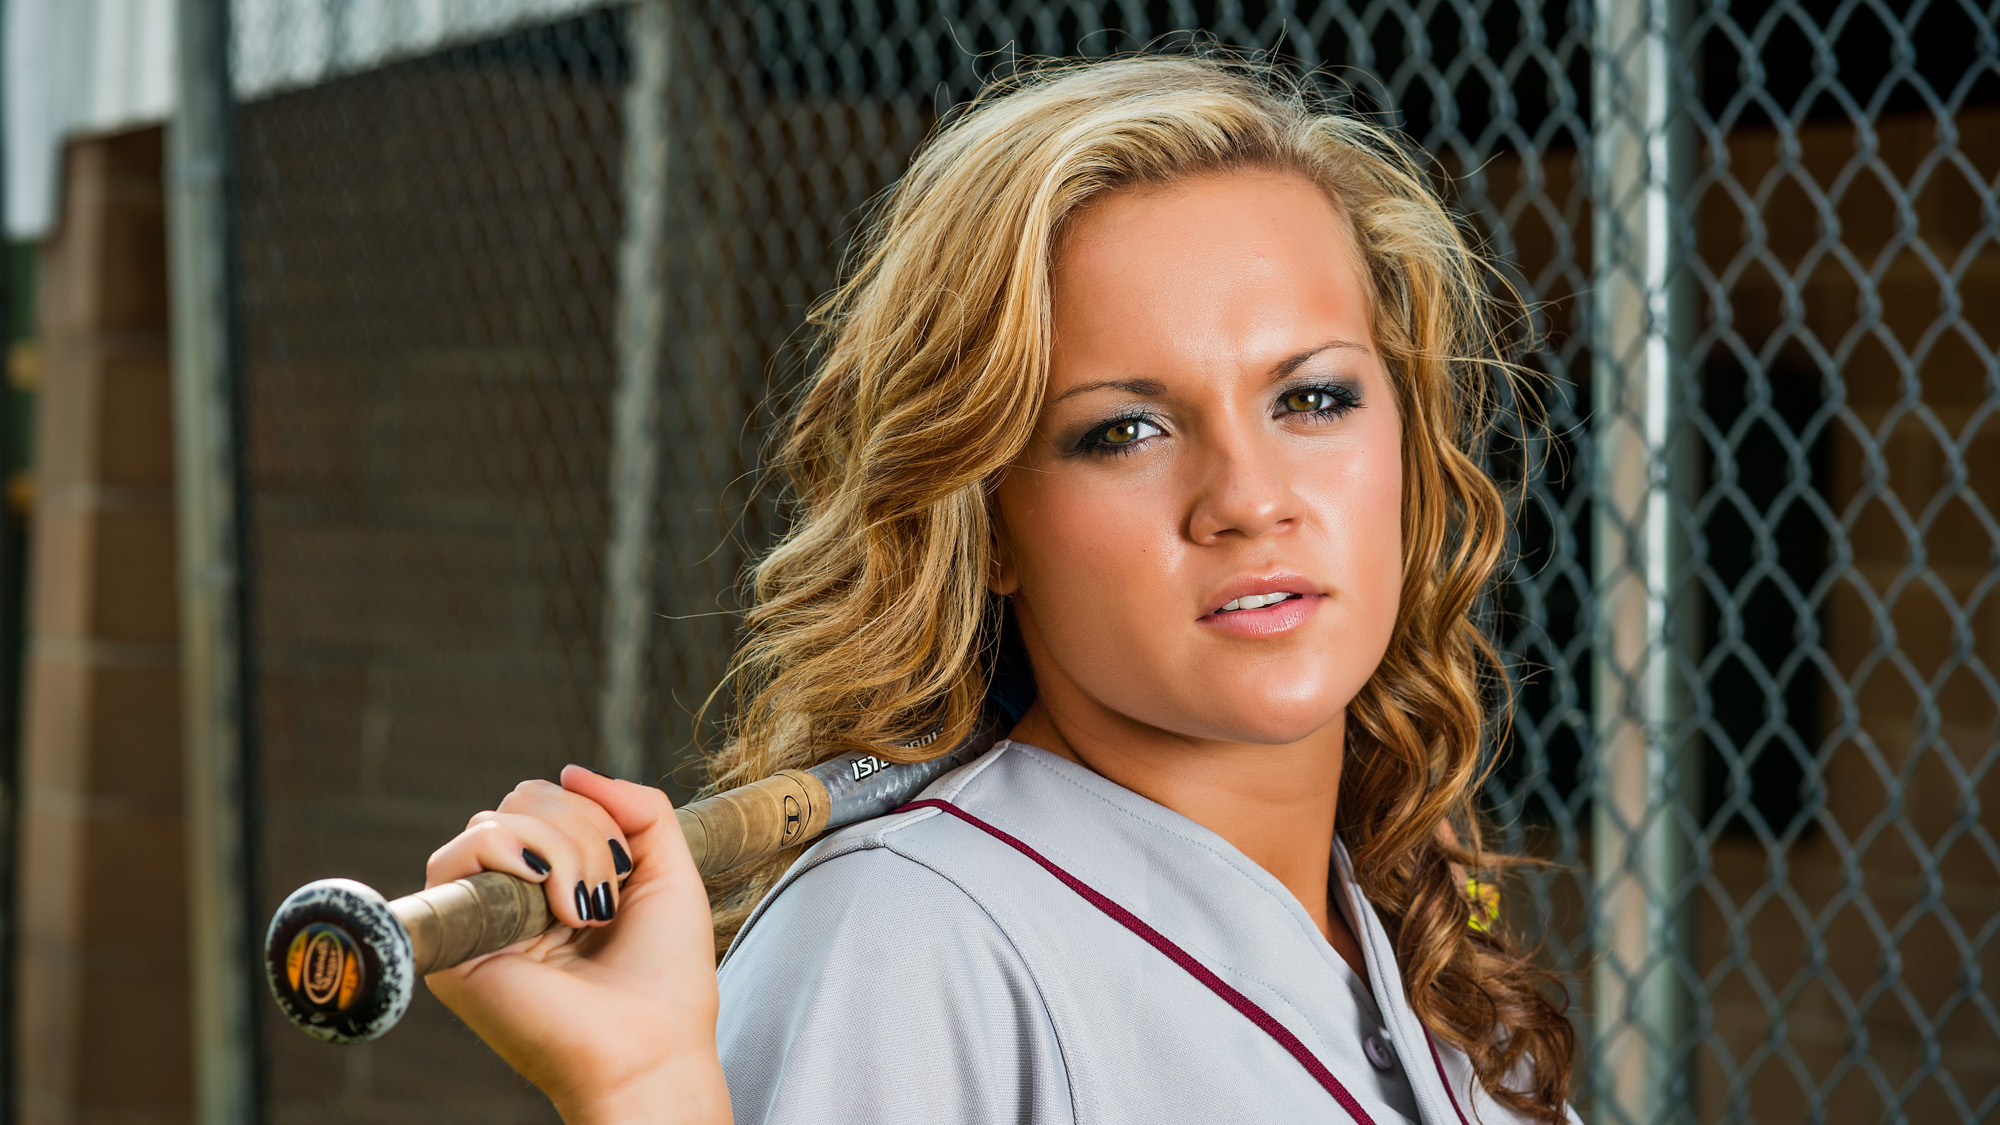 Softball Senior Pictures by Tony Urban Photography Somerset PA